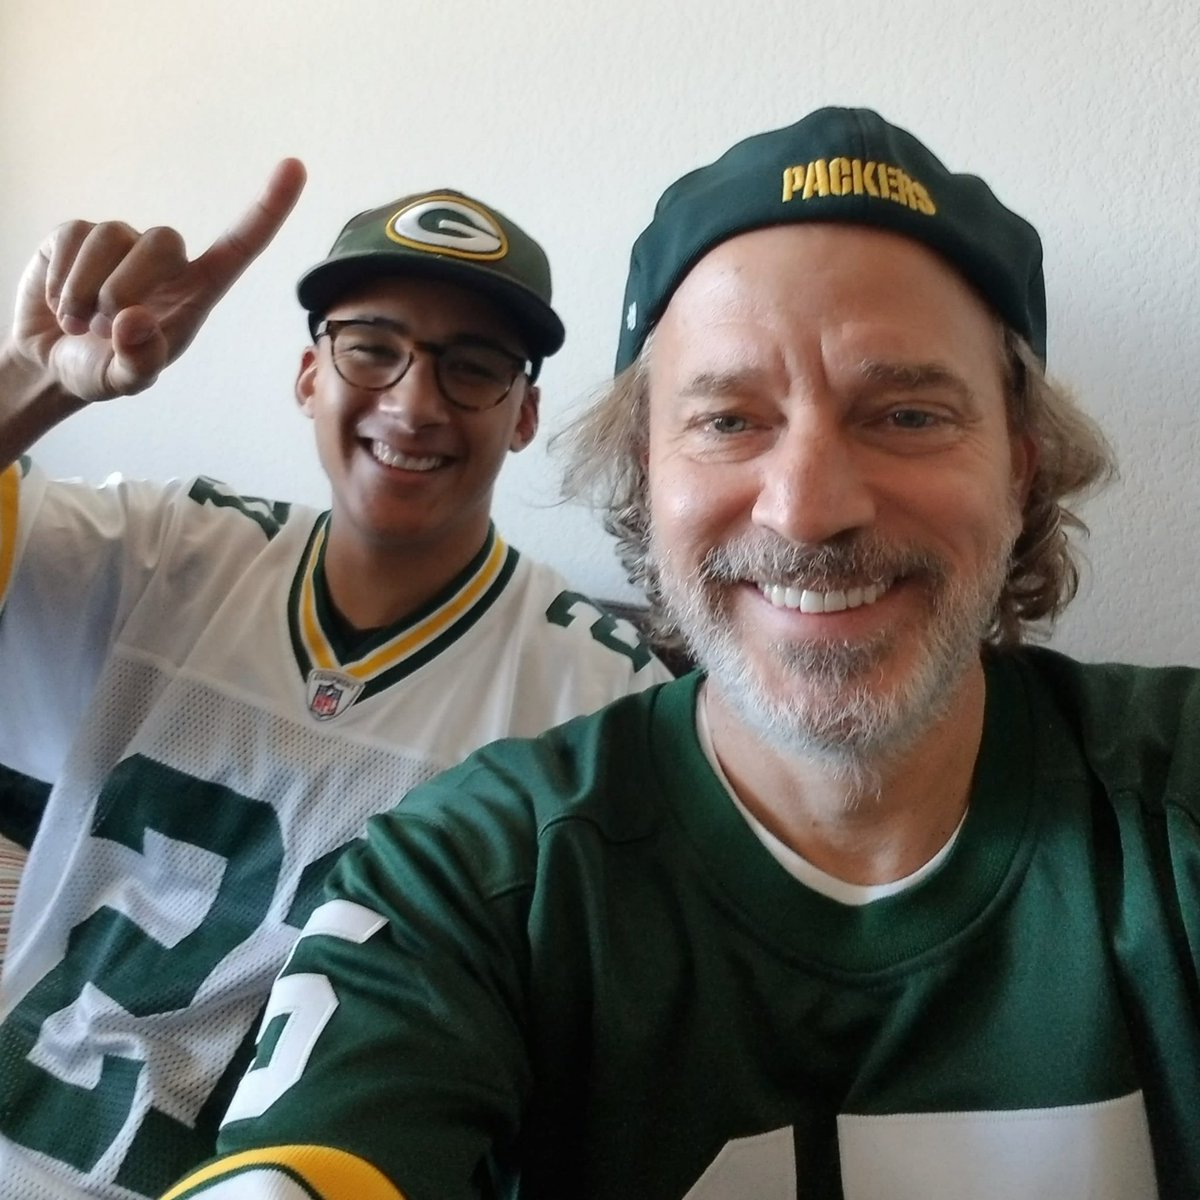 Watching w my nephew. We are ready for some football.   Go Packers!!   #nfl #nflplayoffs #gopackgo #carrytheg #cheeseheadtv #packers #greenbay